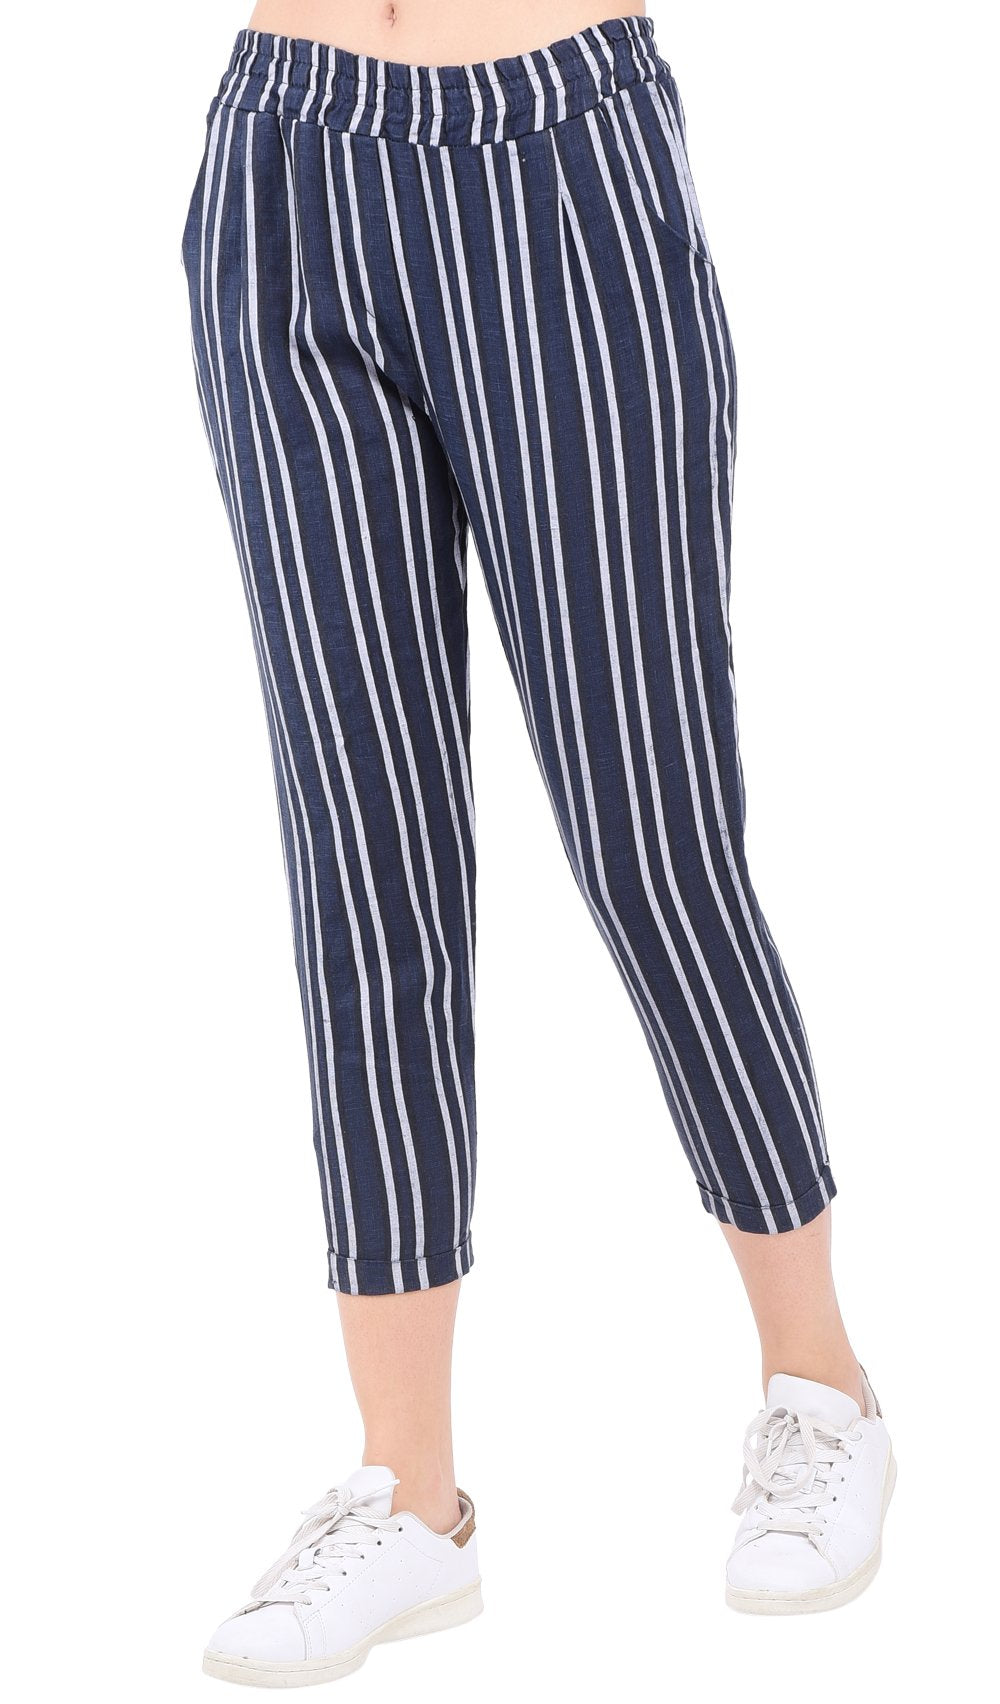 STRIPPED SLIM FIT CROPPED PANT WITH POCKETS AND ELASTIC WAISTBAND